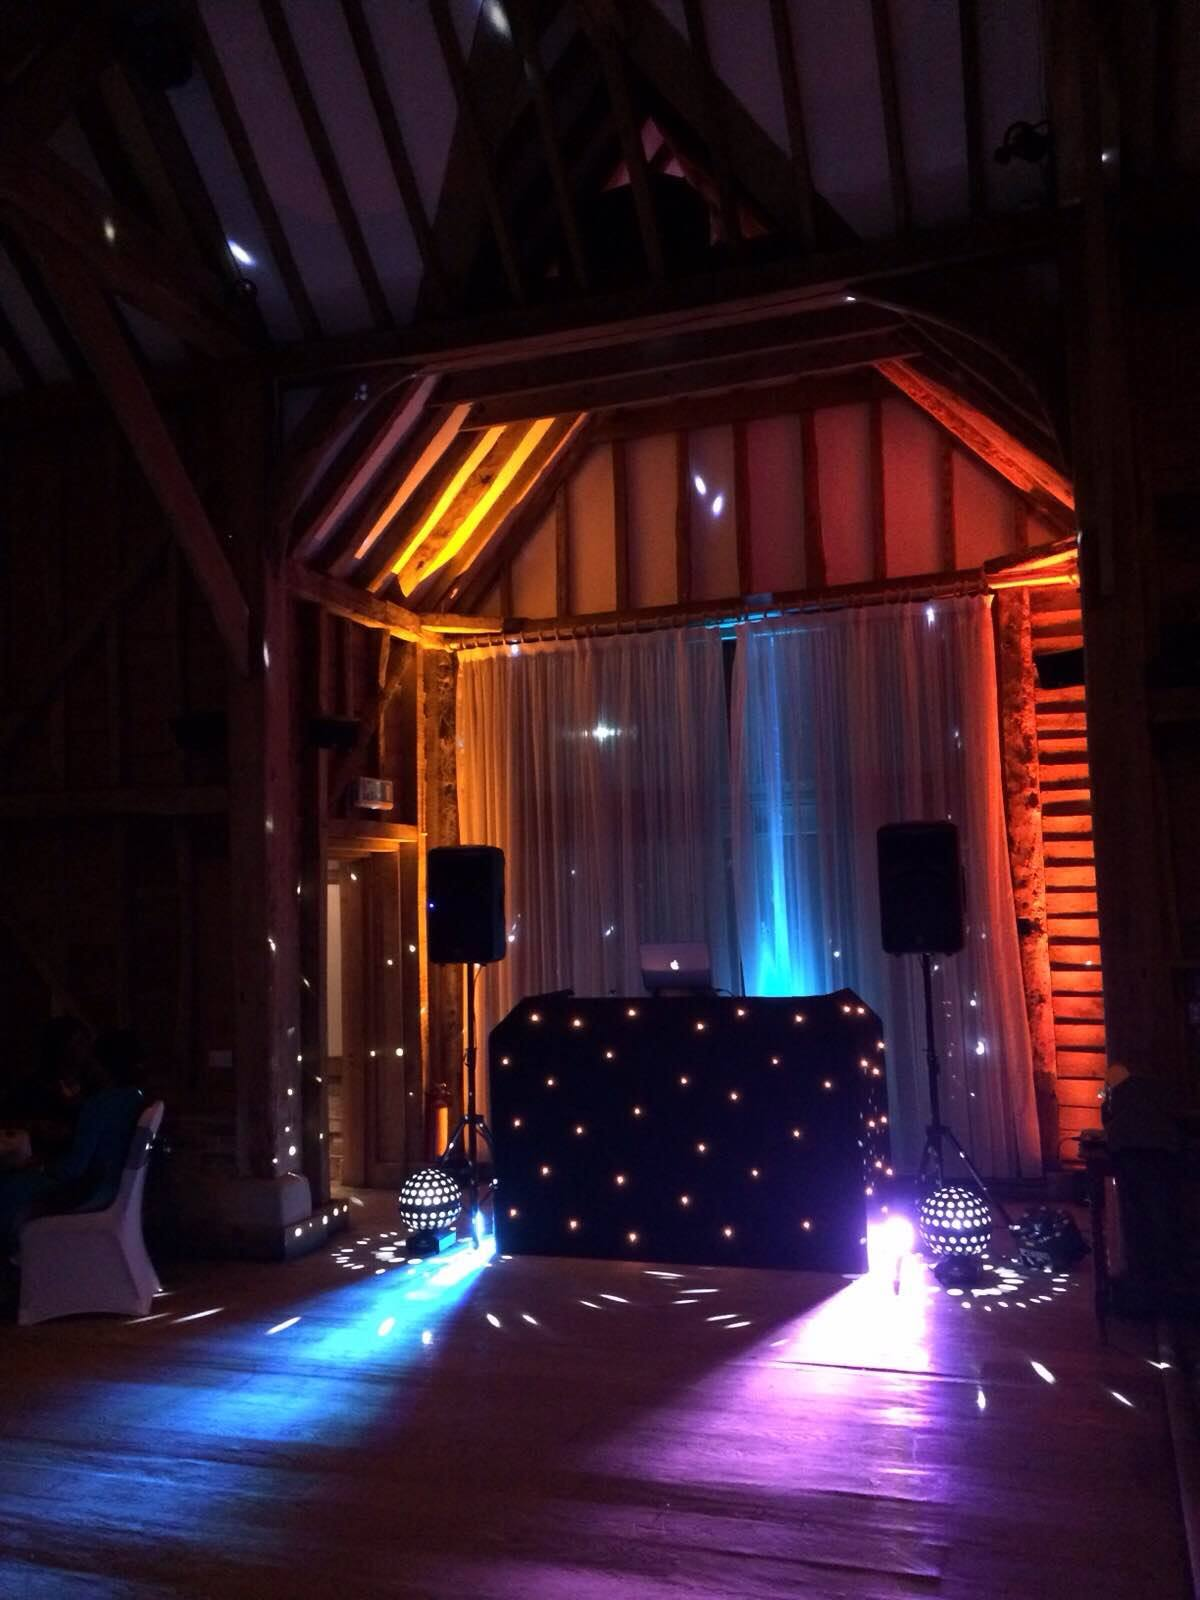 chair covers giant tiger pedicure accessories outdoor small house interior design premier dj package hertfordshire events weddings oversized cushions